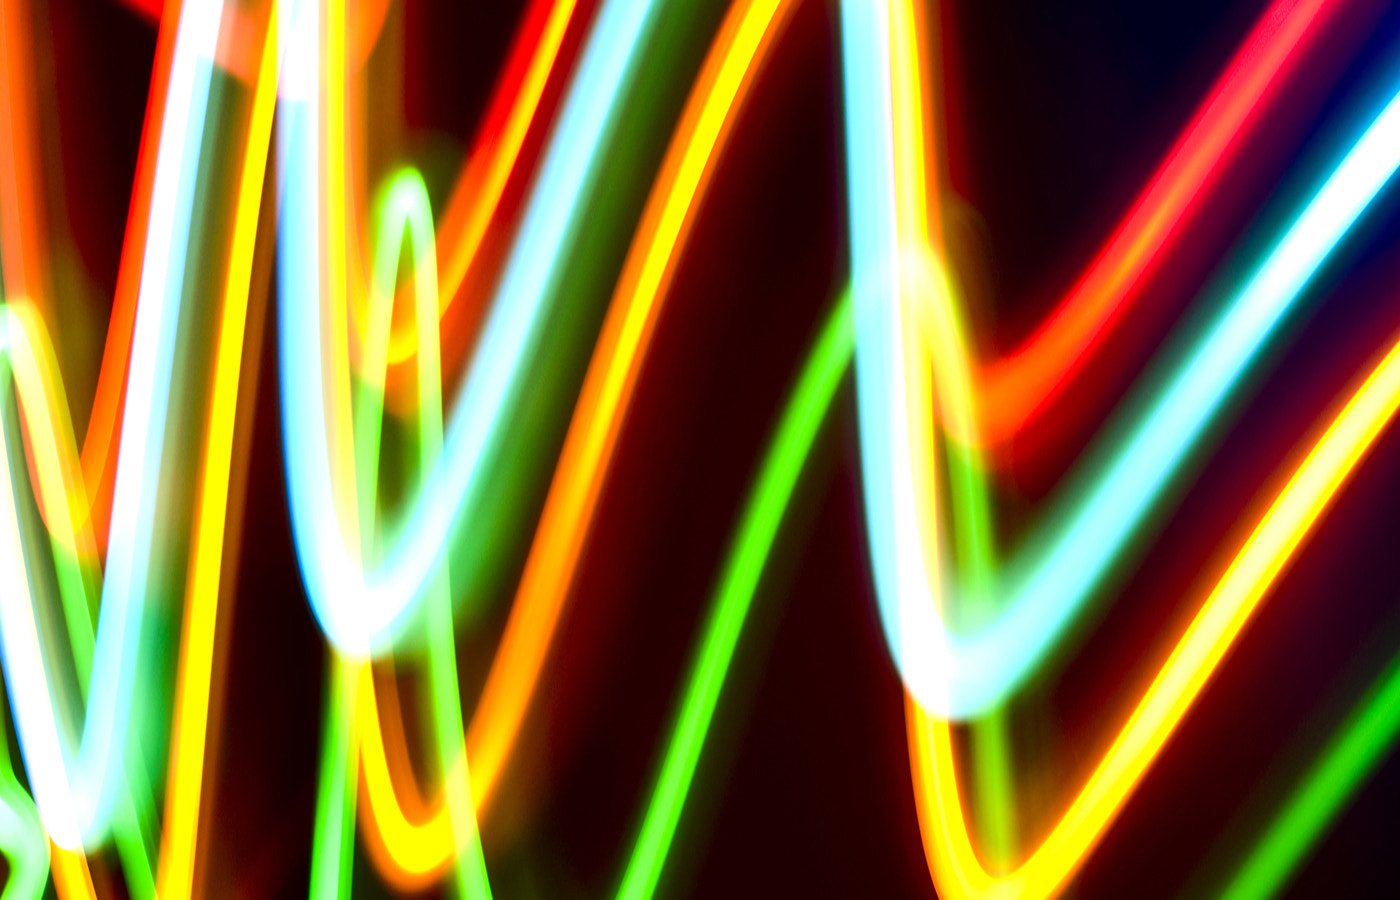 Photograph Light painting by Fay Woodford on 500px